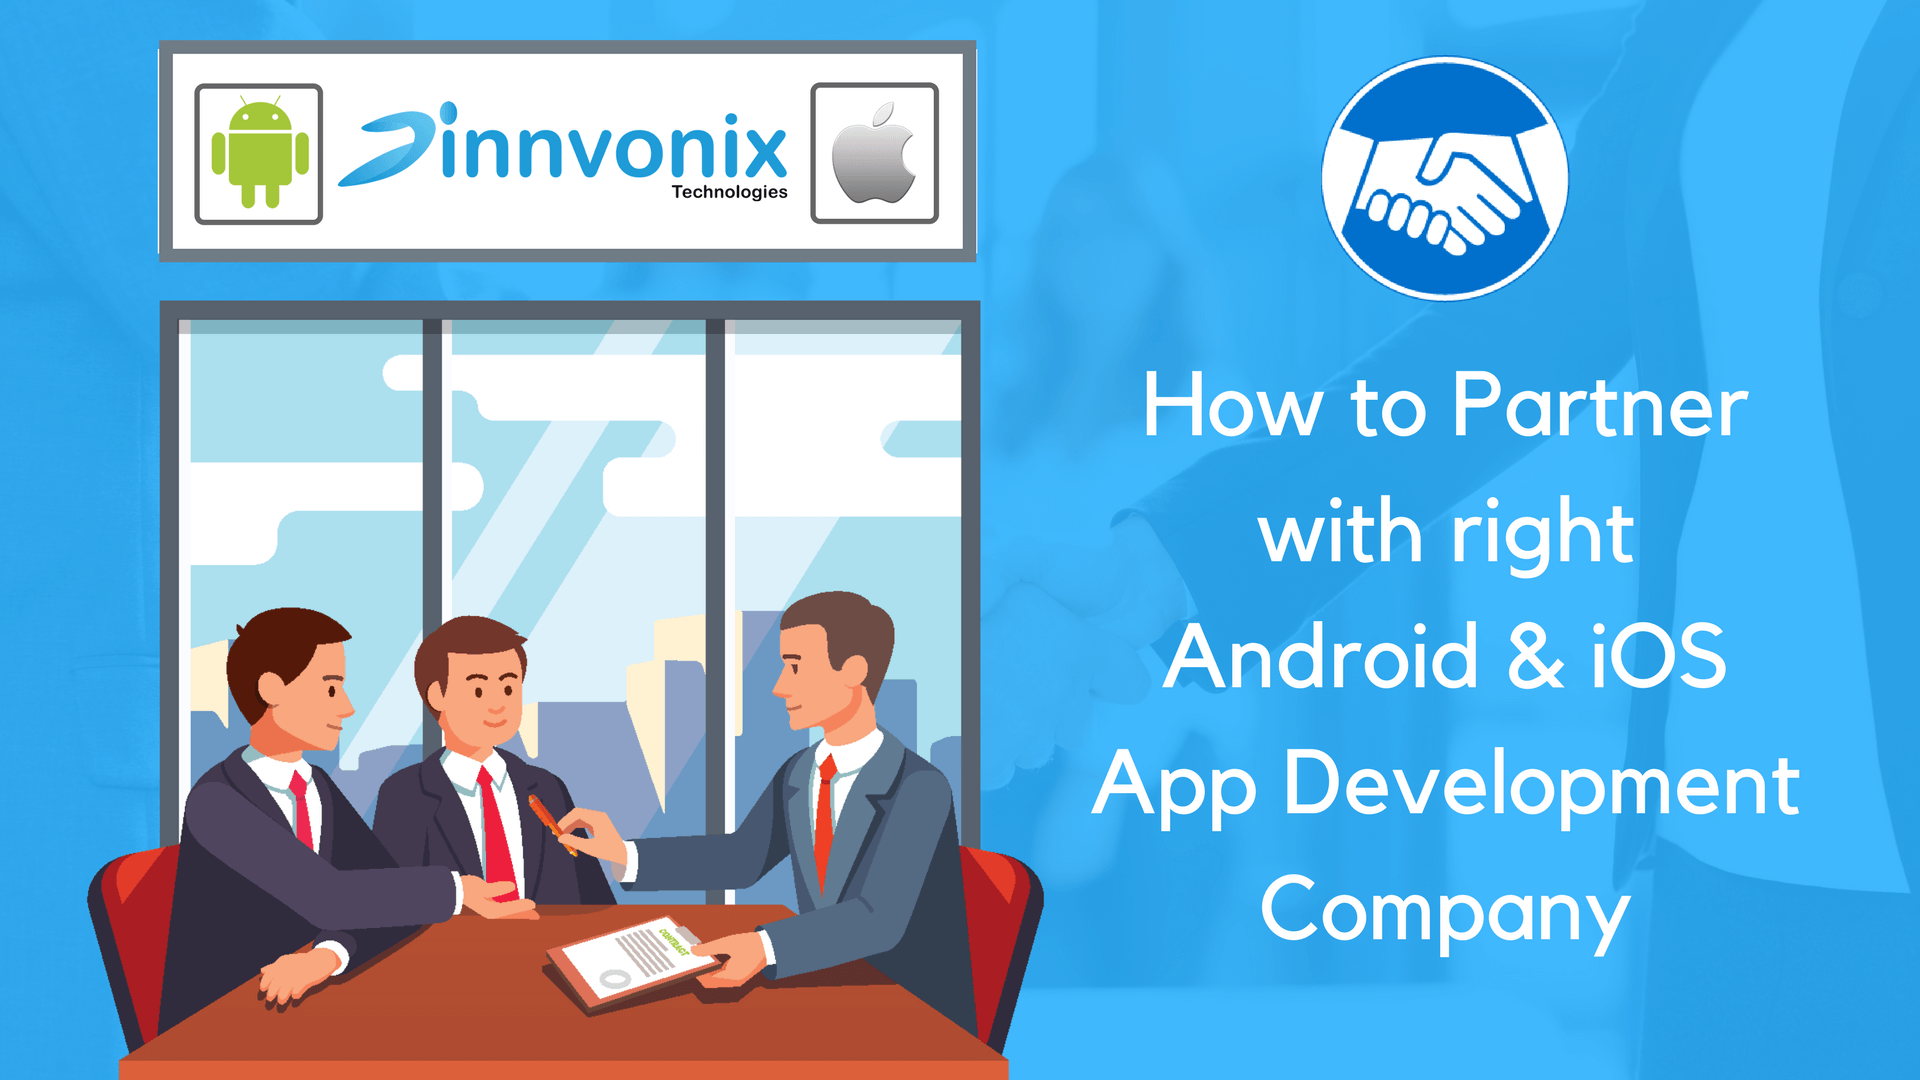 How to Partner with right Android & iOS App Development Company